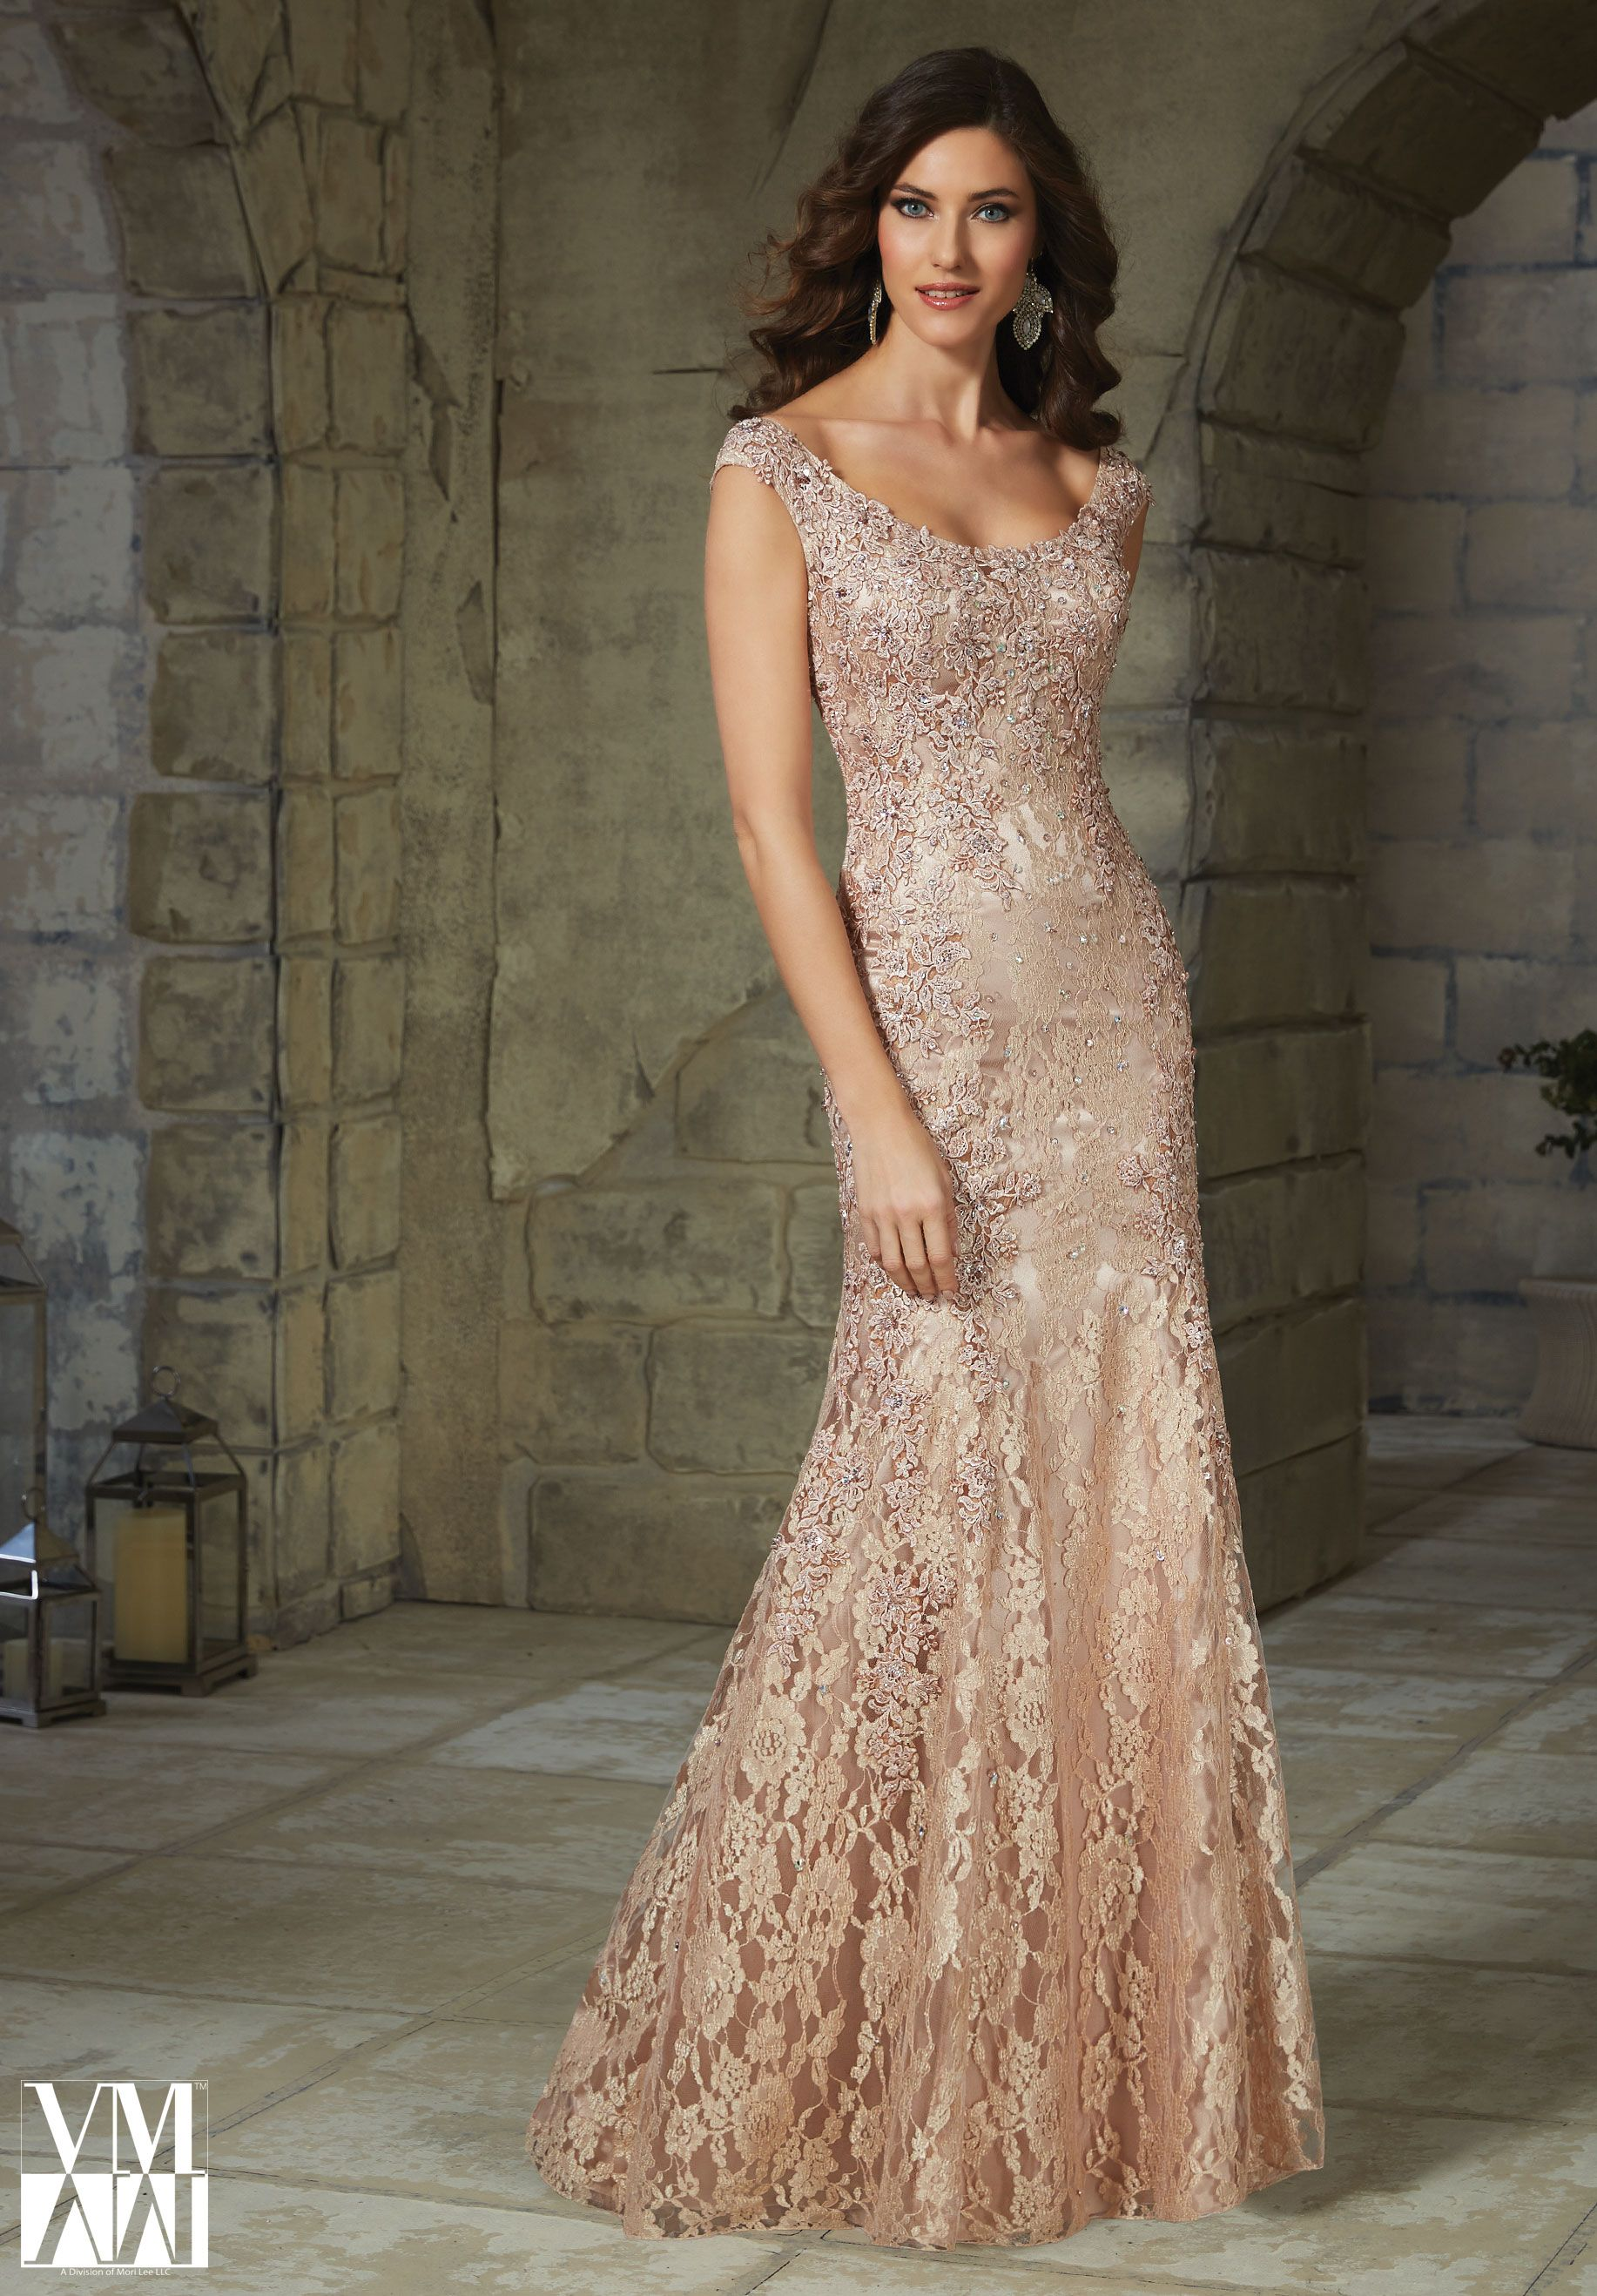 Evening Gown 71215 Beaded Appliques on Lace